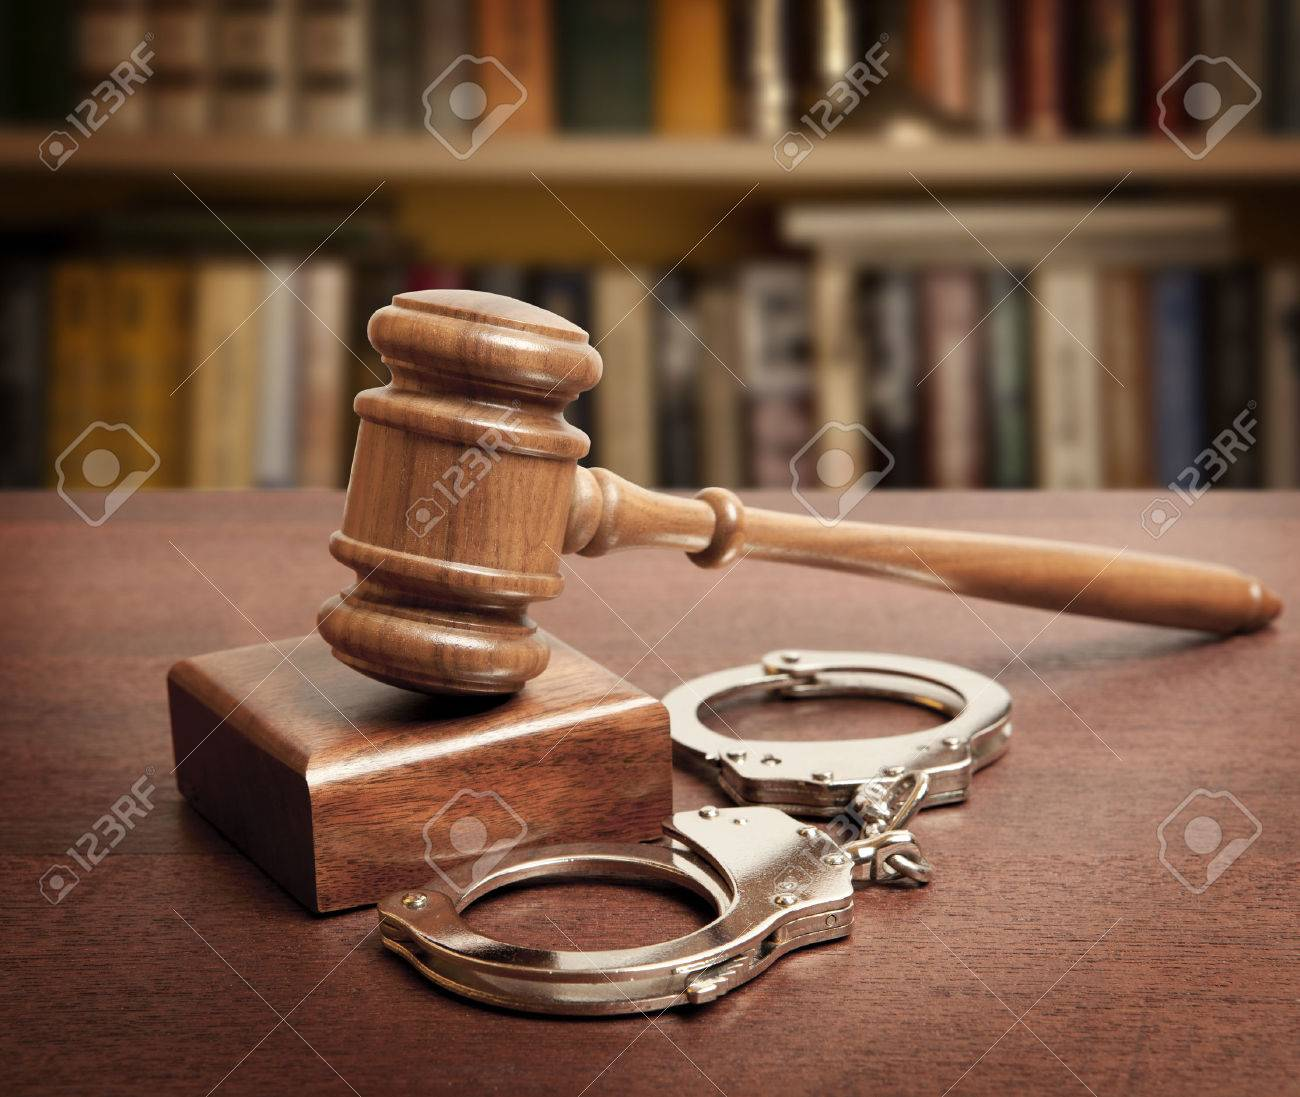 Gavel and handcuffs on wooden background - 49176695